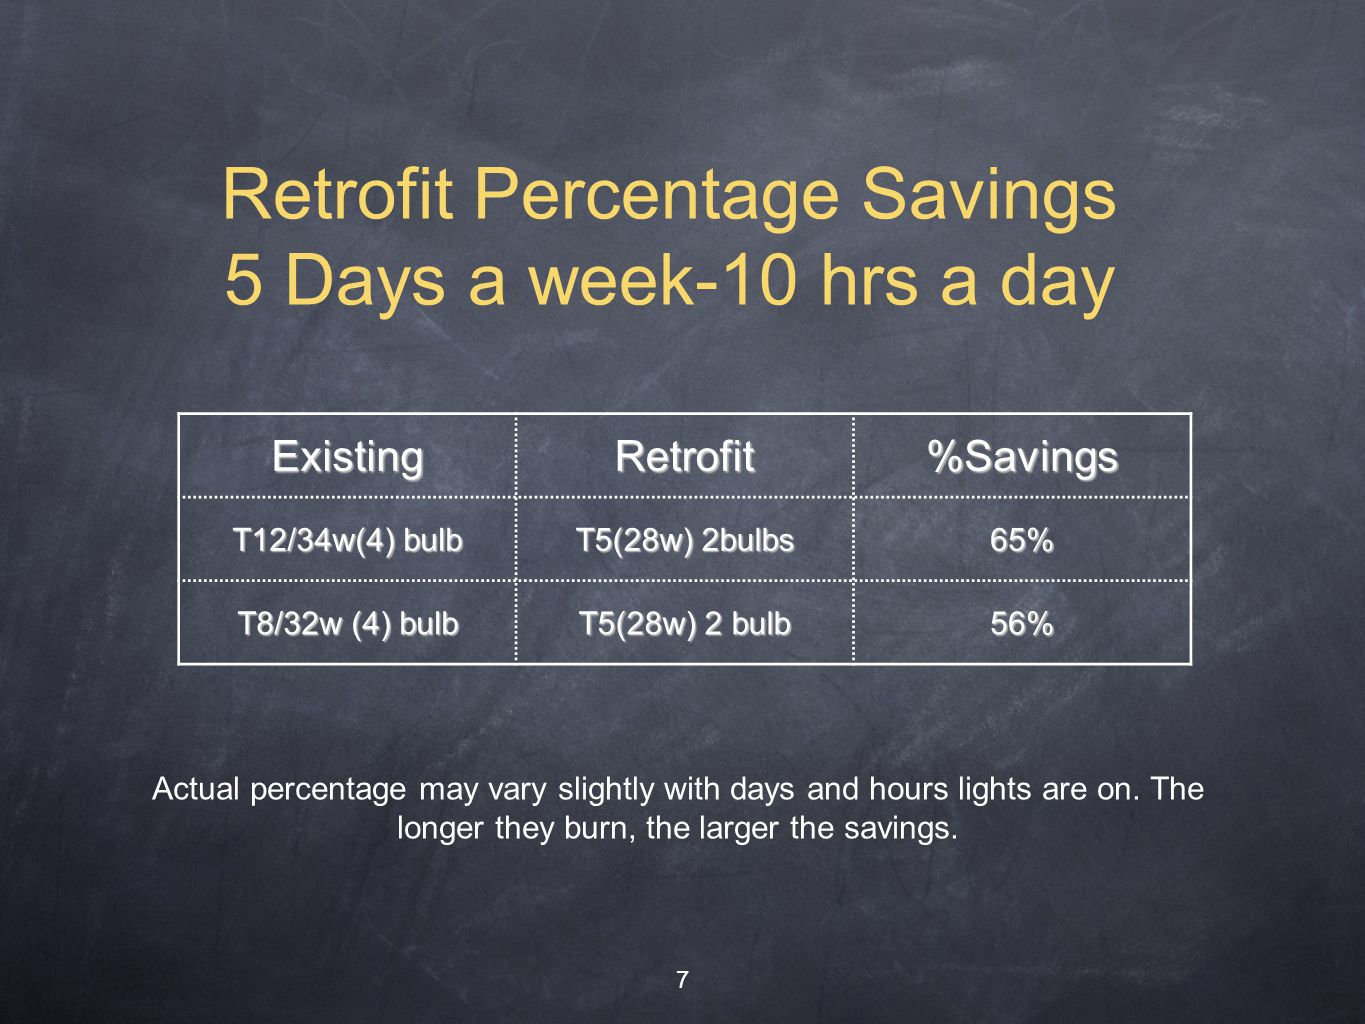 Retrofit Percentage Savings 5 Days a week-10 hrs a day 7 ExistingRetrofit%Savings T12/34w(4) bulb T5(28w) 2bulbs 65% T8/32w (4) bulb T5(28w) 2 bulb 56% Actual percentage may vary slightly with days and hours lights are on.